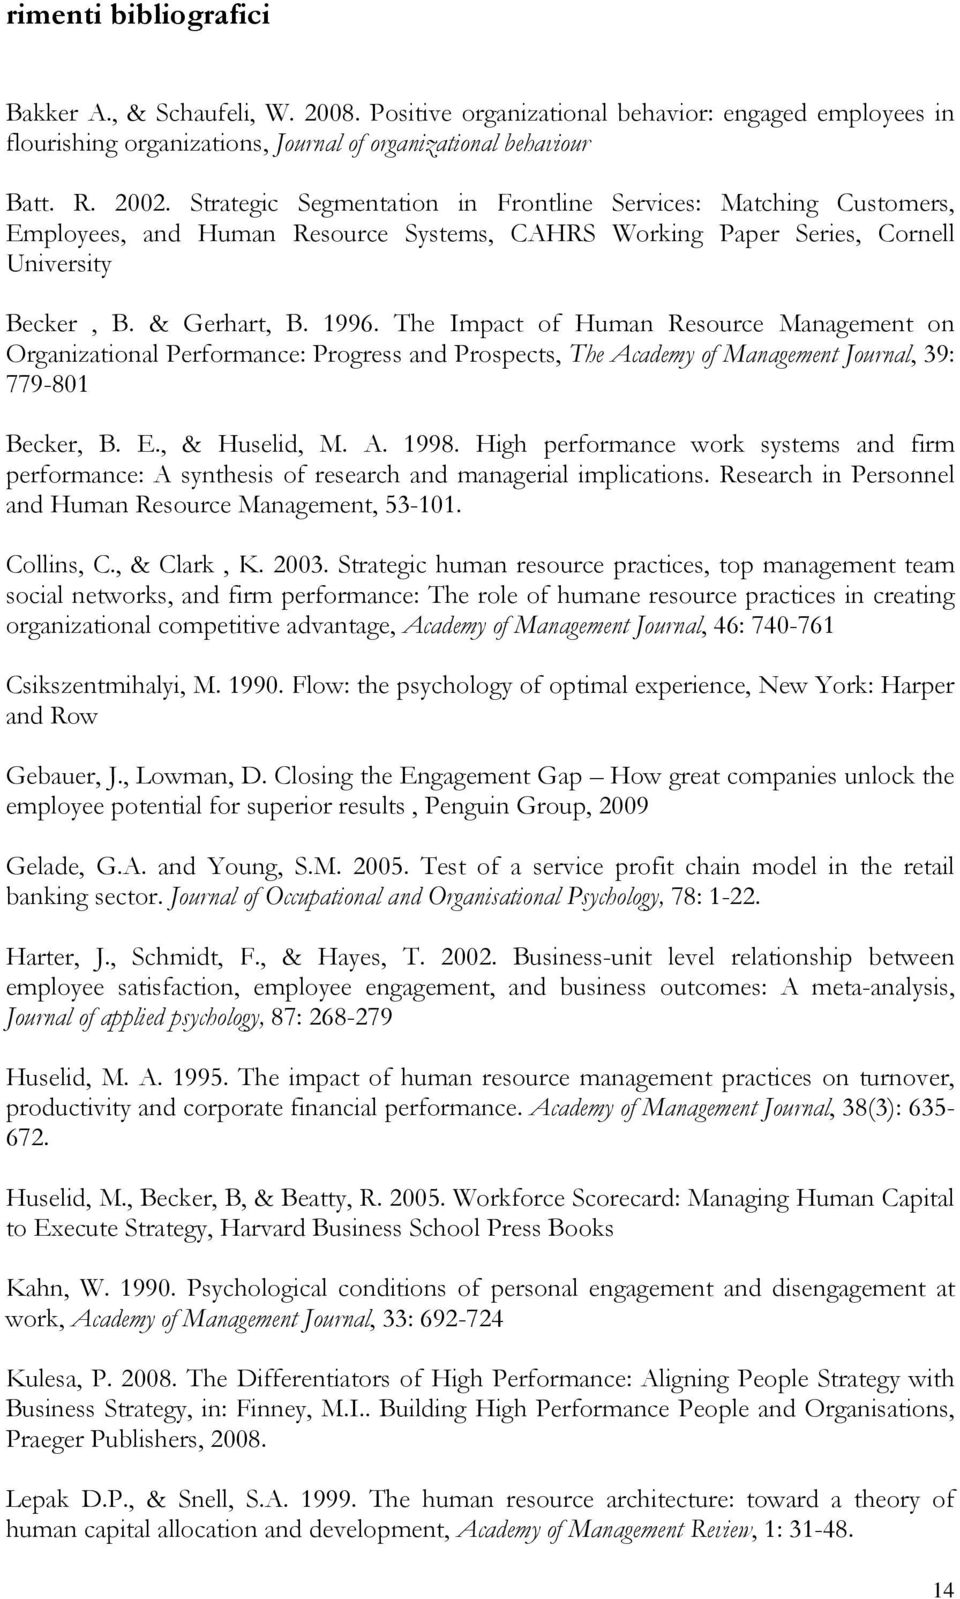 The Impact of Human Resource Management on Organizational Performance: Progress and Prospects, The Academy of Management Journal, 39: 779-801 Becker, B. E., & Huselid, M. A. 1998.